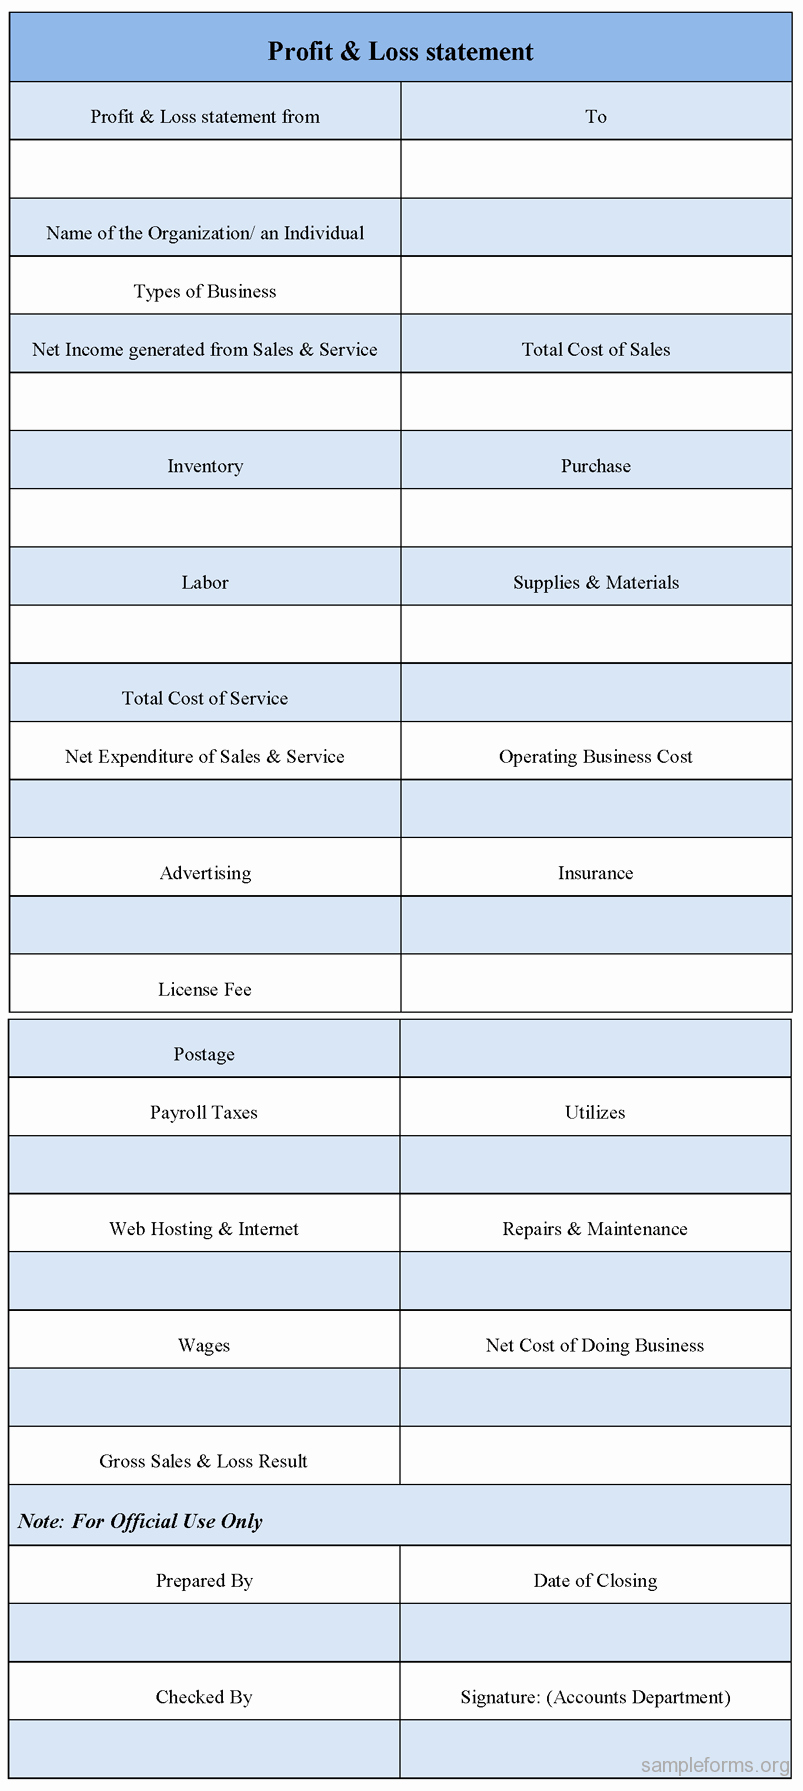 Free Profit and Loss Statement New Profit and Loss Statement form Sample forms